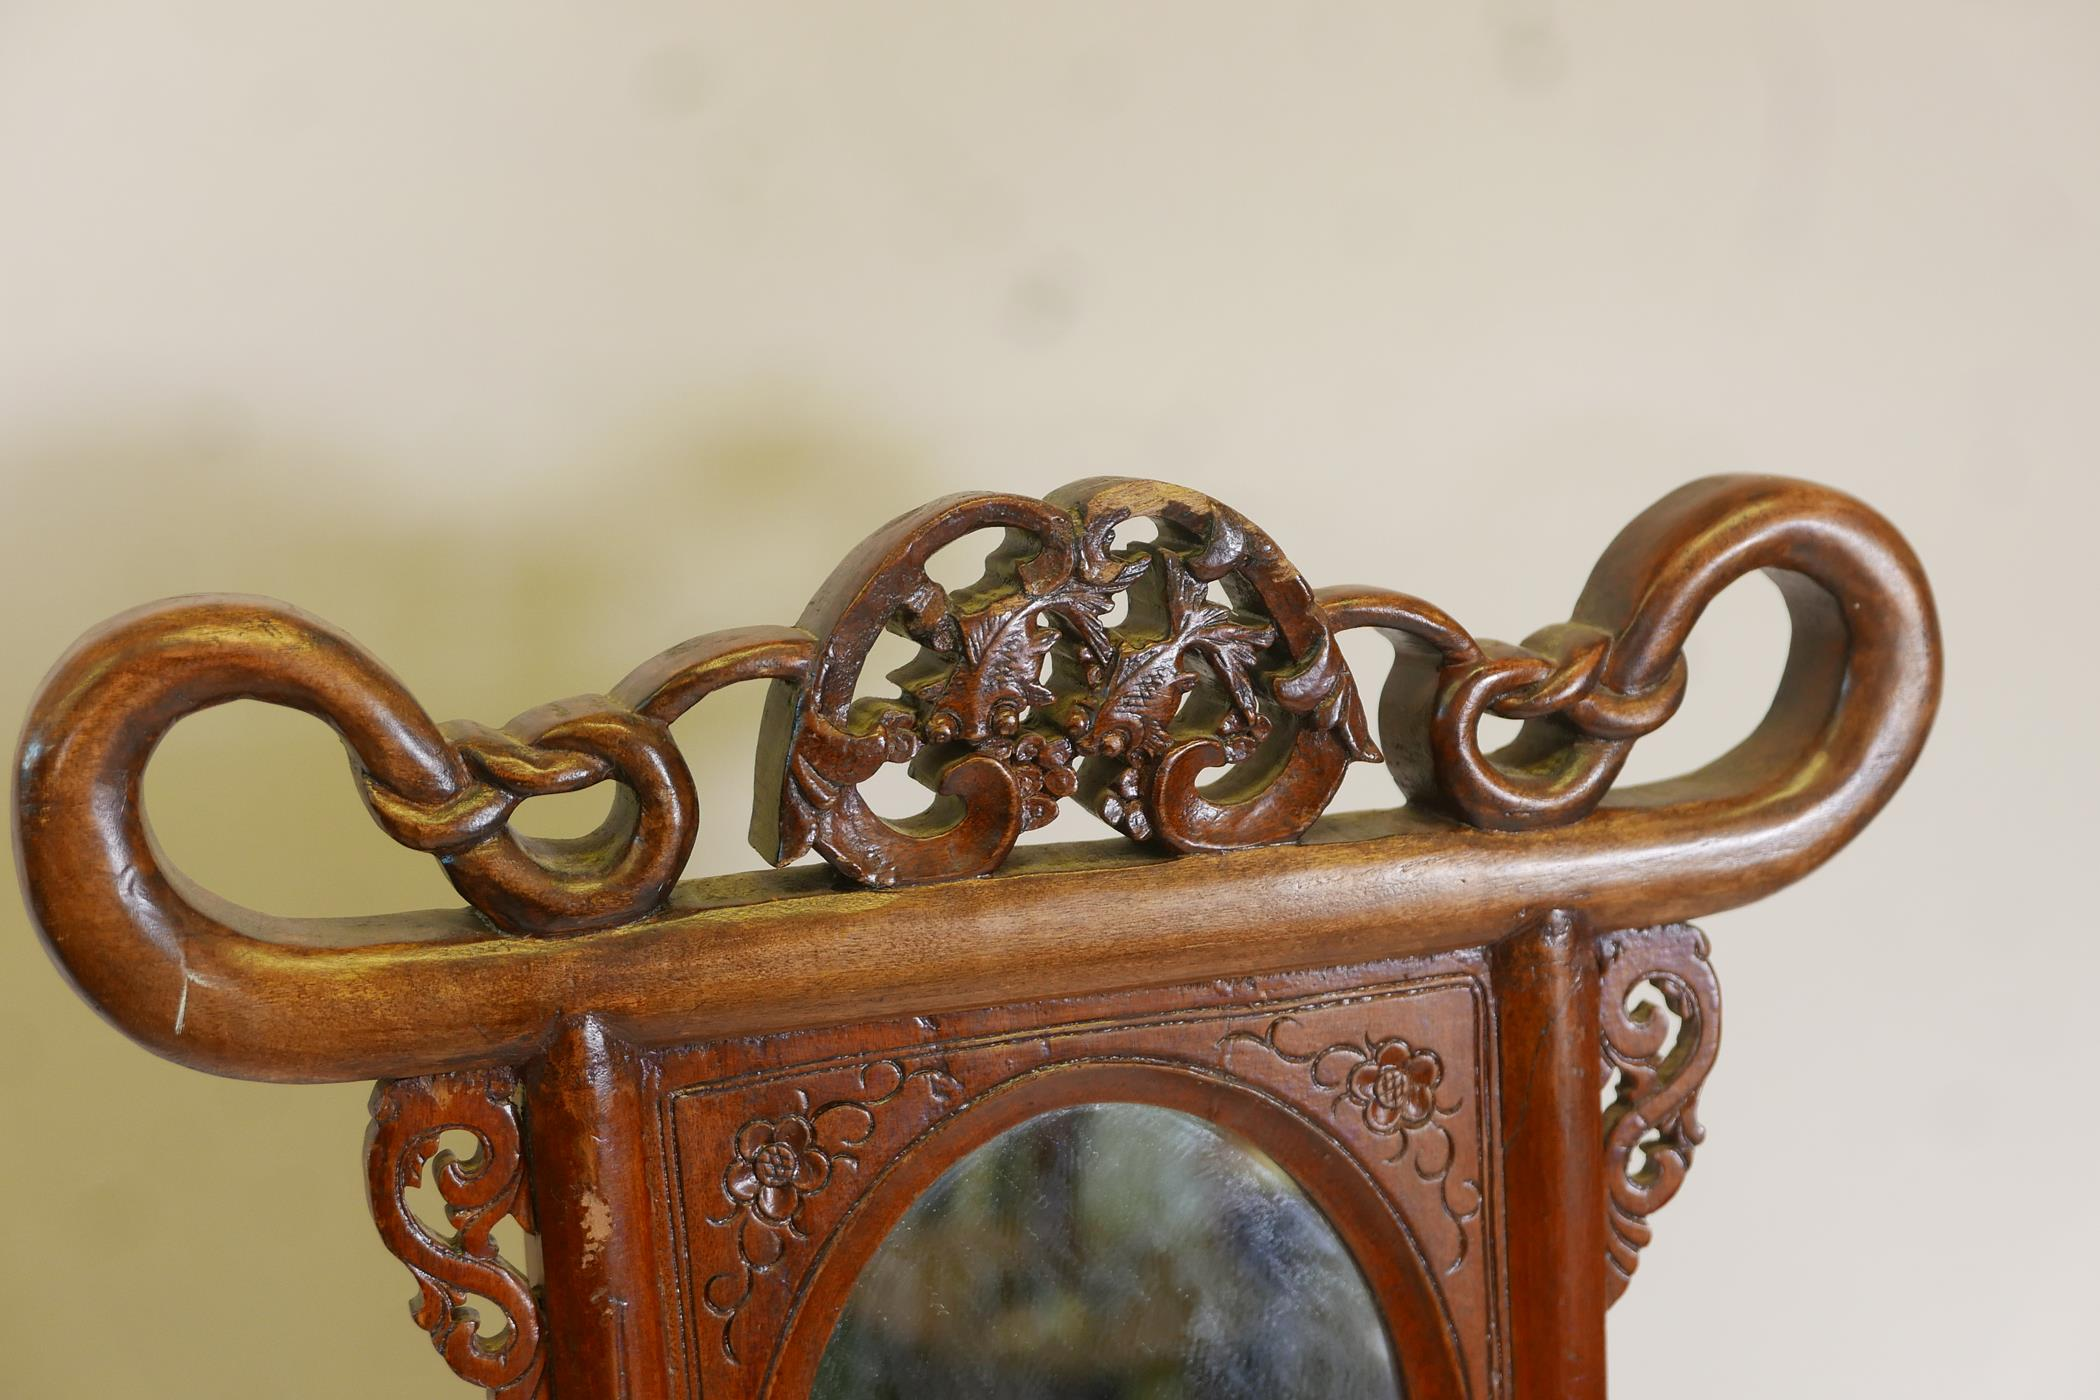 A Chinese hardwood wash stand with carved goldfish detail and inset mirror, the legs united by a - Image 4 of 4